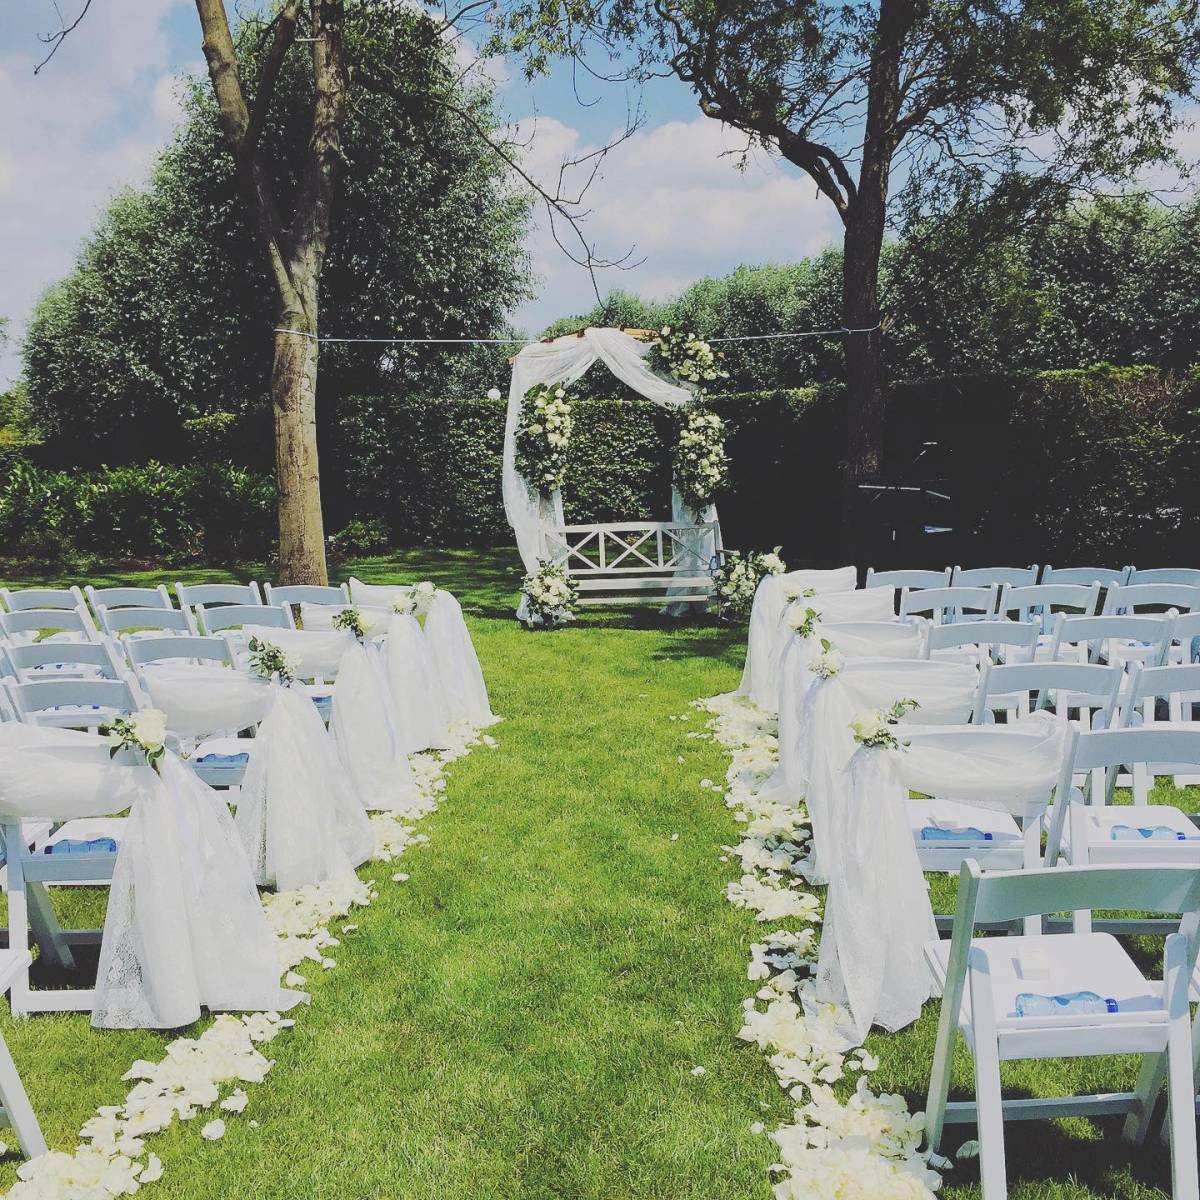 Excellence Weddings - House of Weddings - Excellence Weddings6